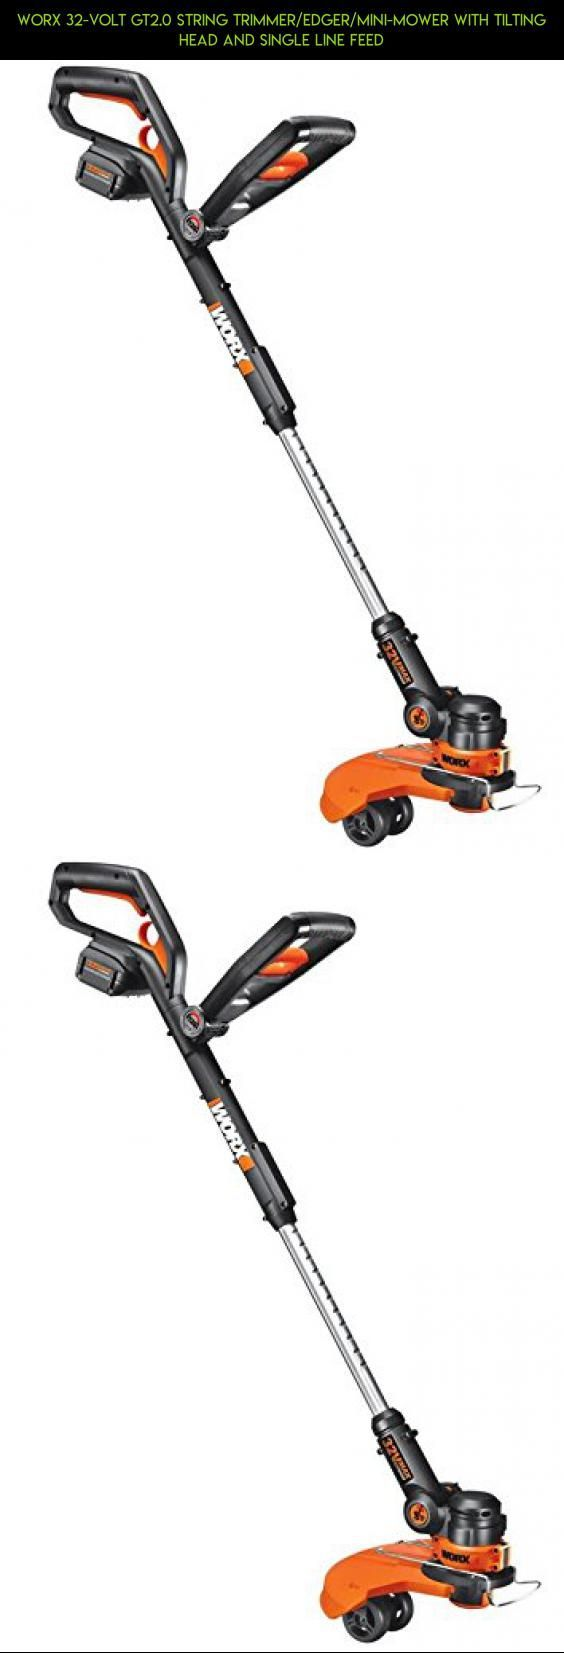 WORX 32-Volt GT2.0 String Trimmer/Edger/Mini-Mower with Tilting Head and Single Line Feed #cordless #fpv #gadgets #racing #trimmers #technology #shopping #kit #products #drone #lawn #plans #parts #tech #camera